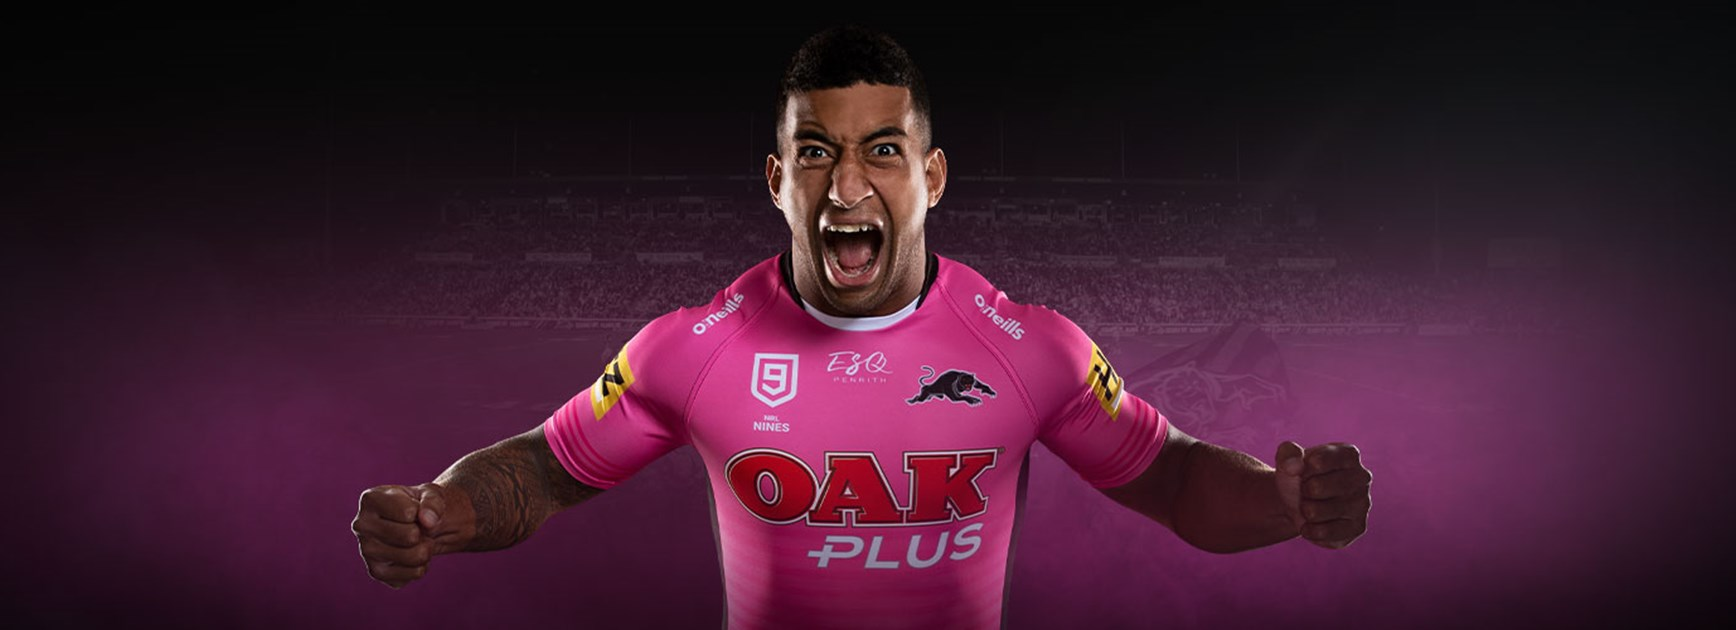 Pink is back as Alternate and Nines Jerseys revealed